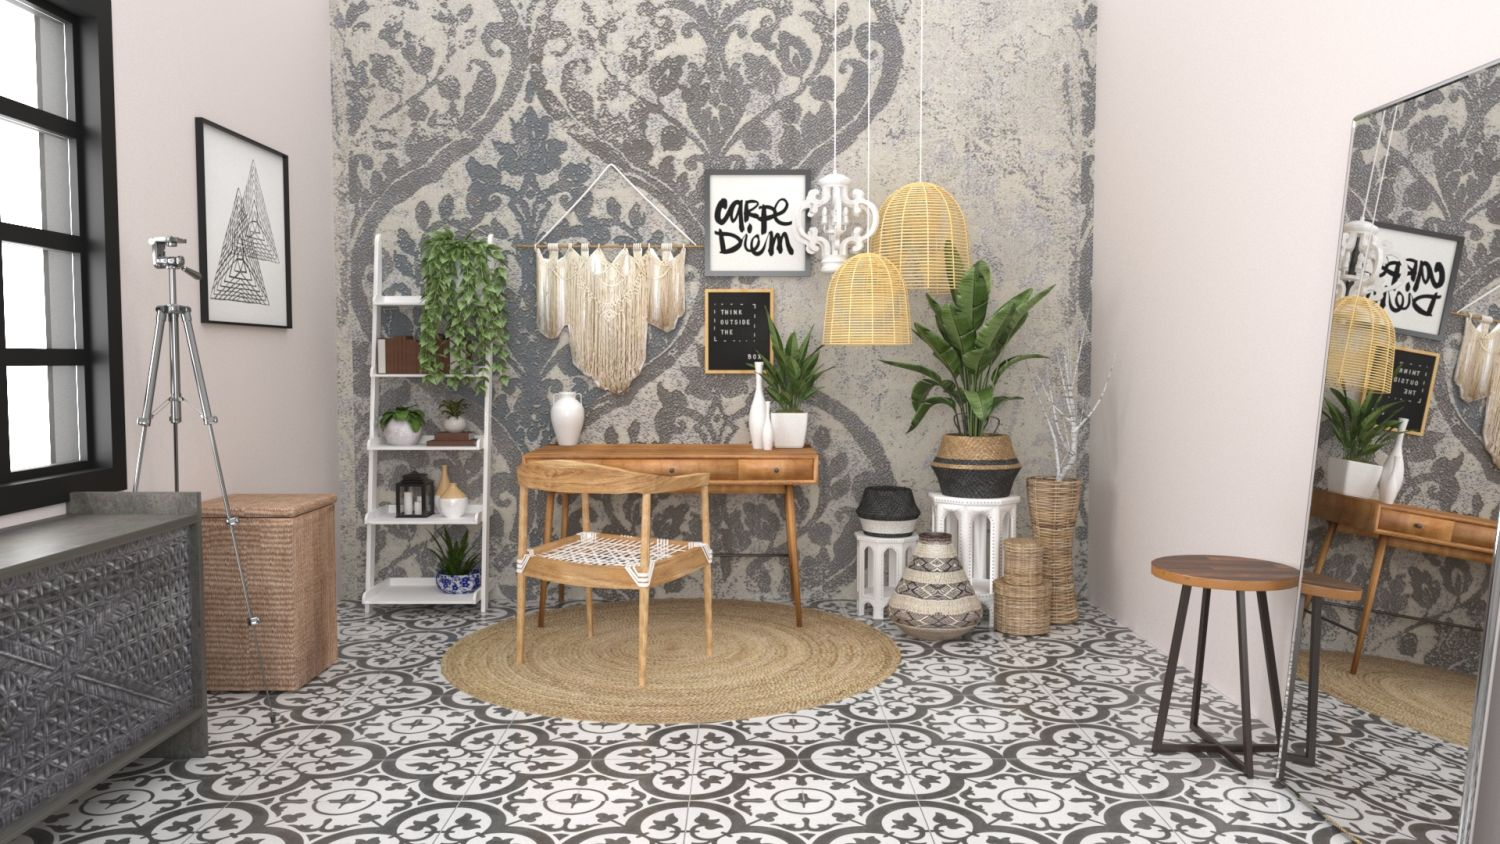 Blogger's Desk: Boho Eclectic Design By Spacejoy